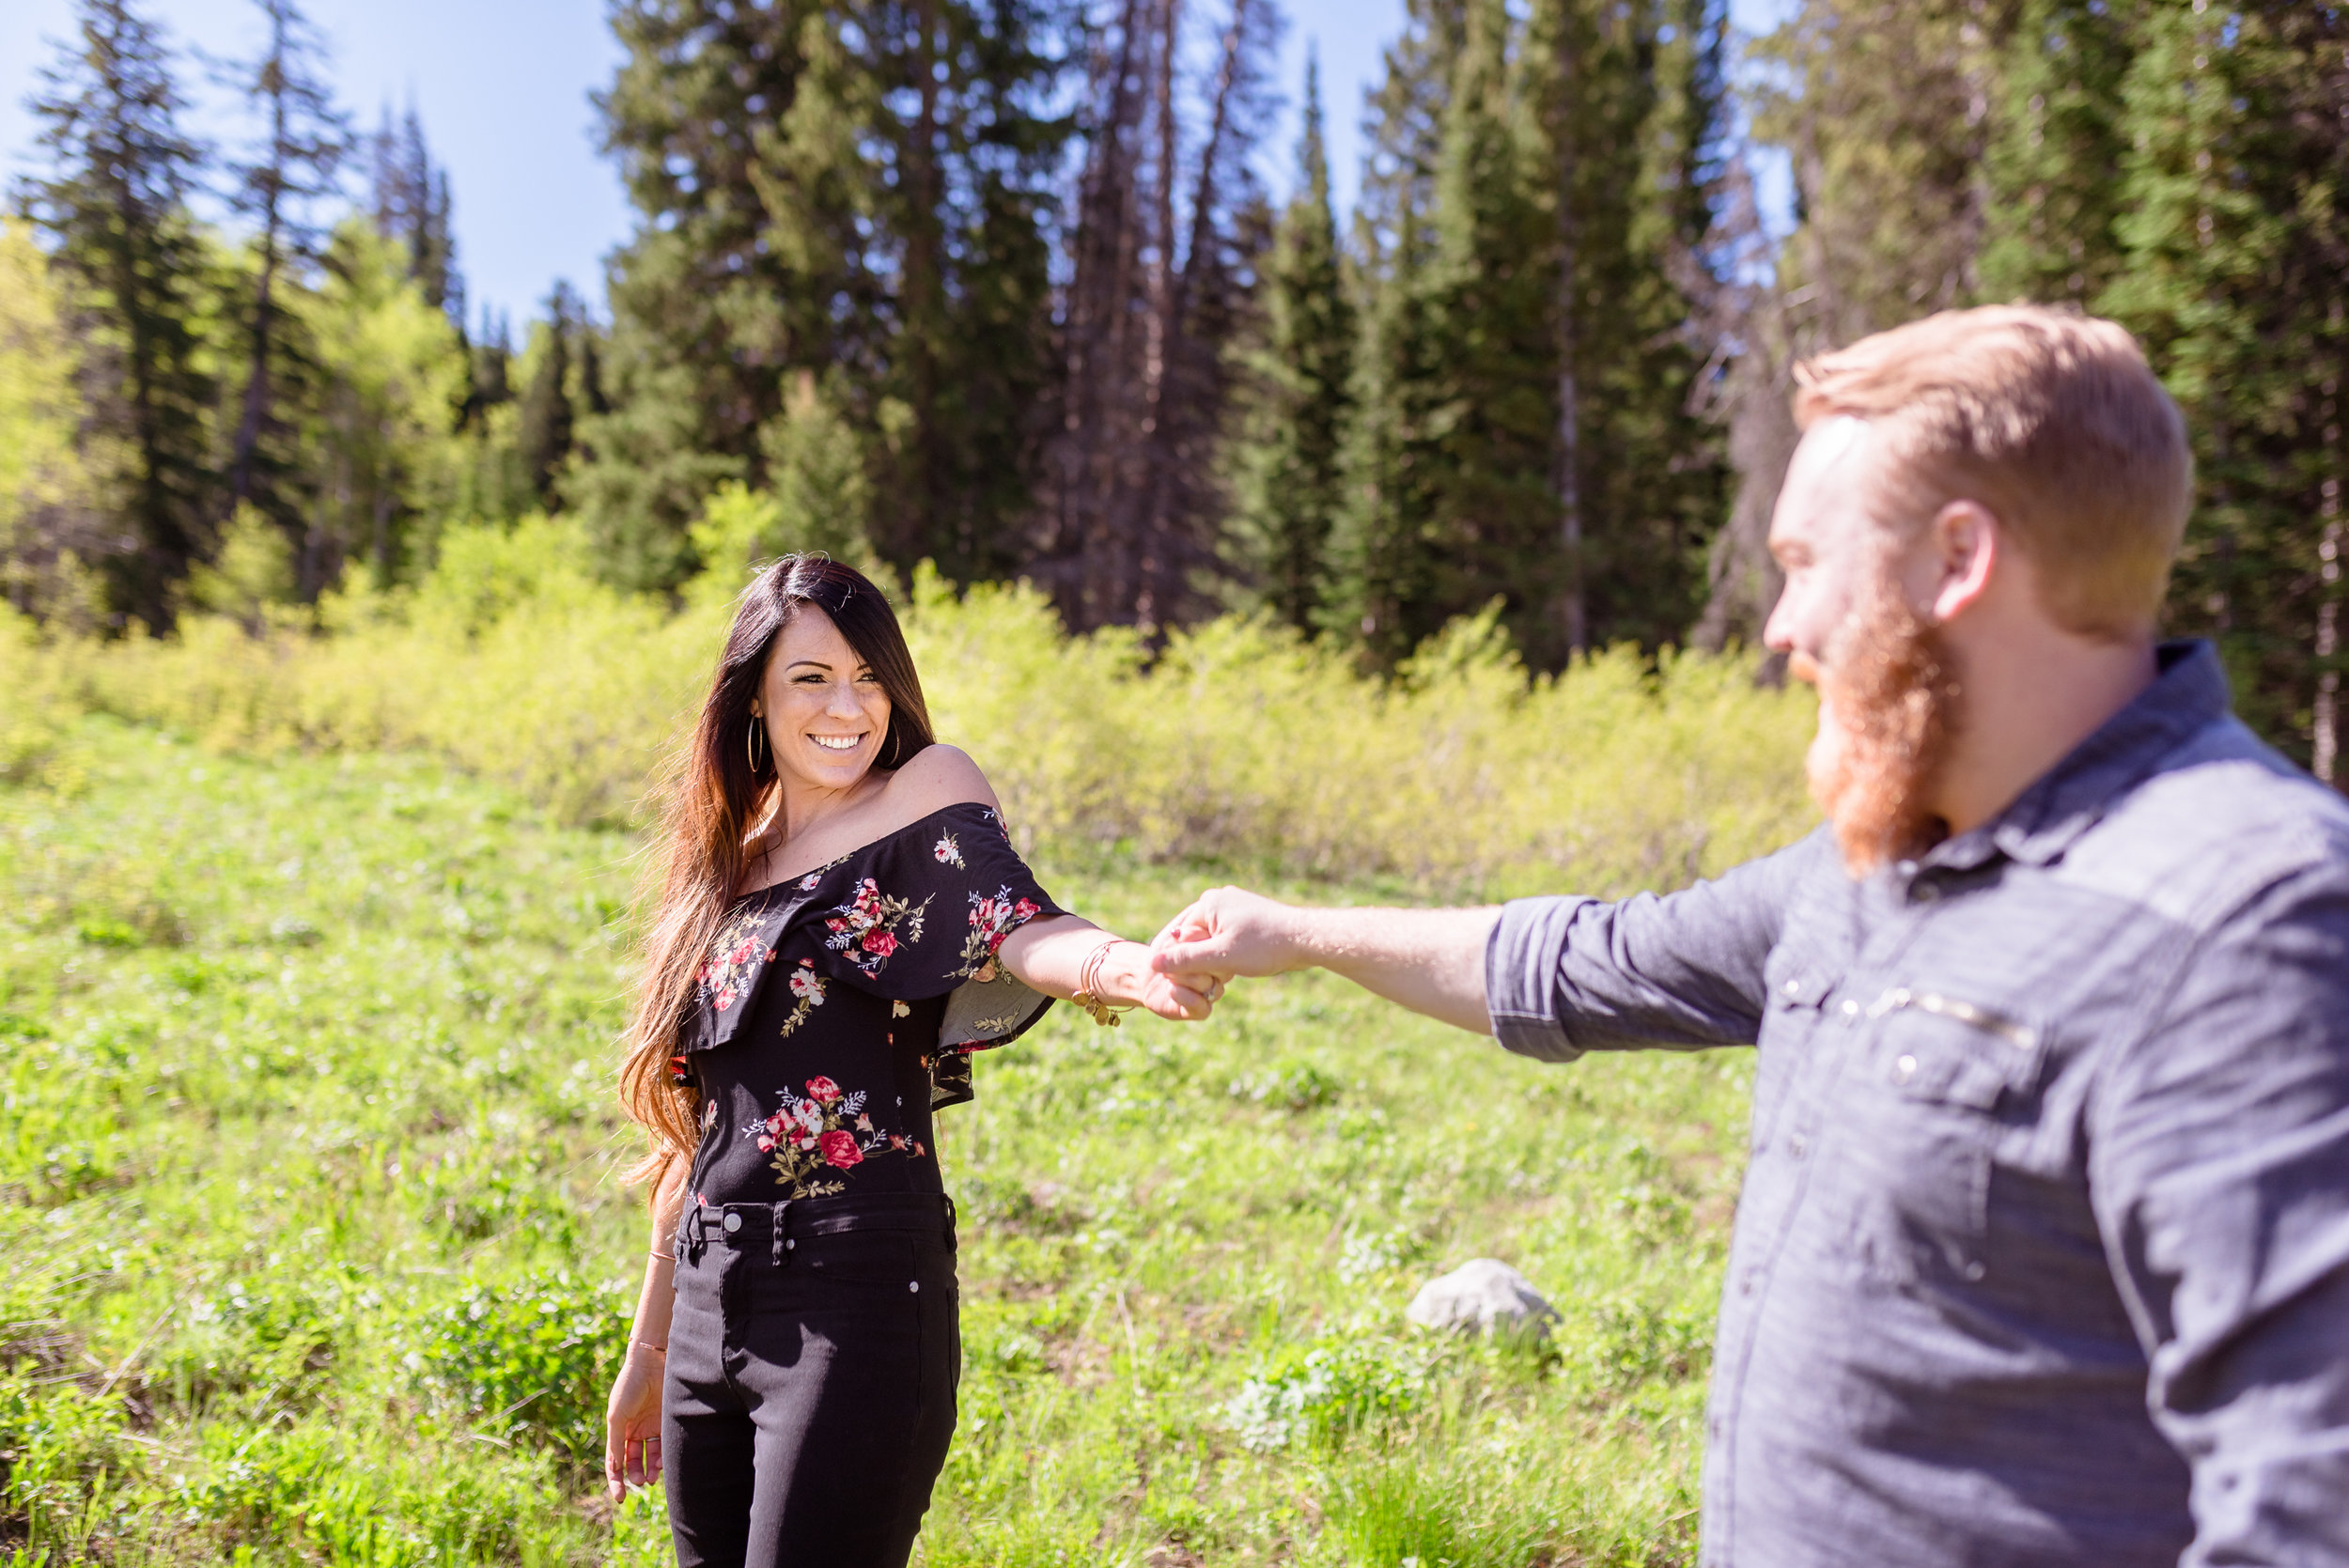 Playfully walking through a meadow during a morning engagement session in the Salt Lake mountains. Engagement session at Jordan Pines Campground in Big Cottonwood Canyon.